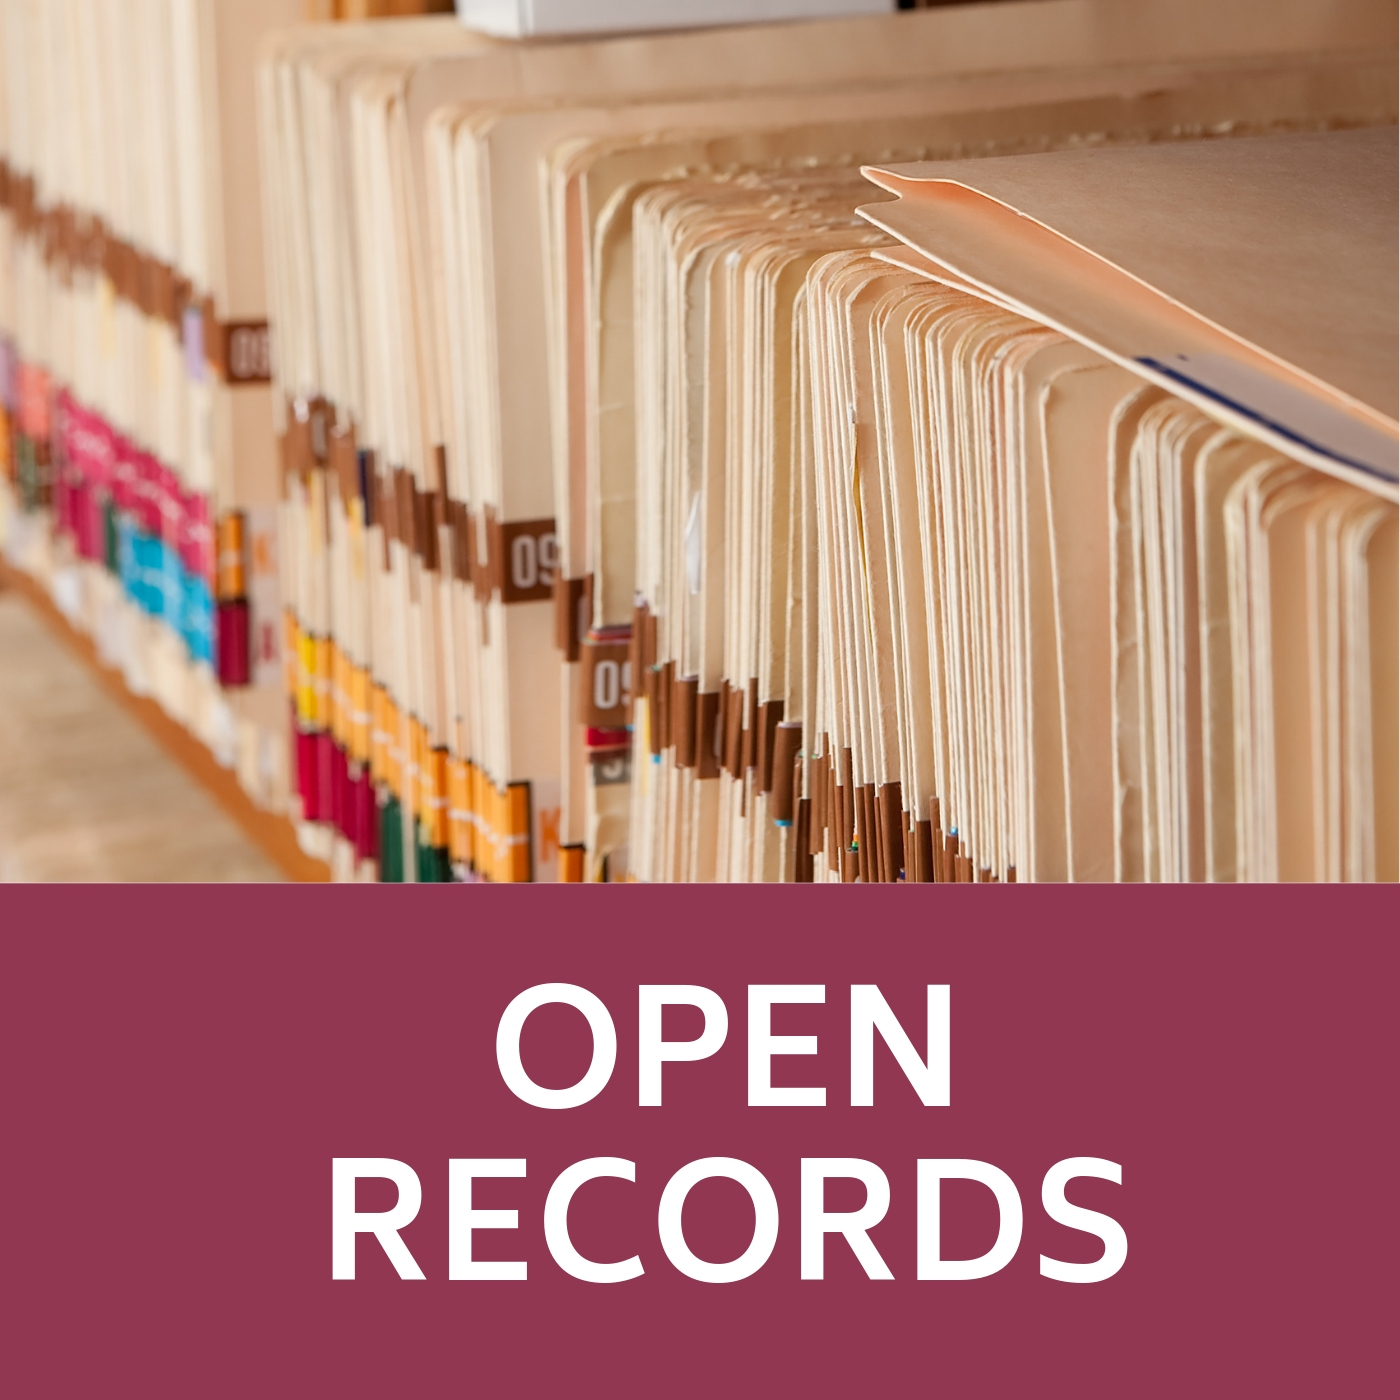 Open Records Symbol of folders that links to the open records webpage